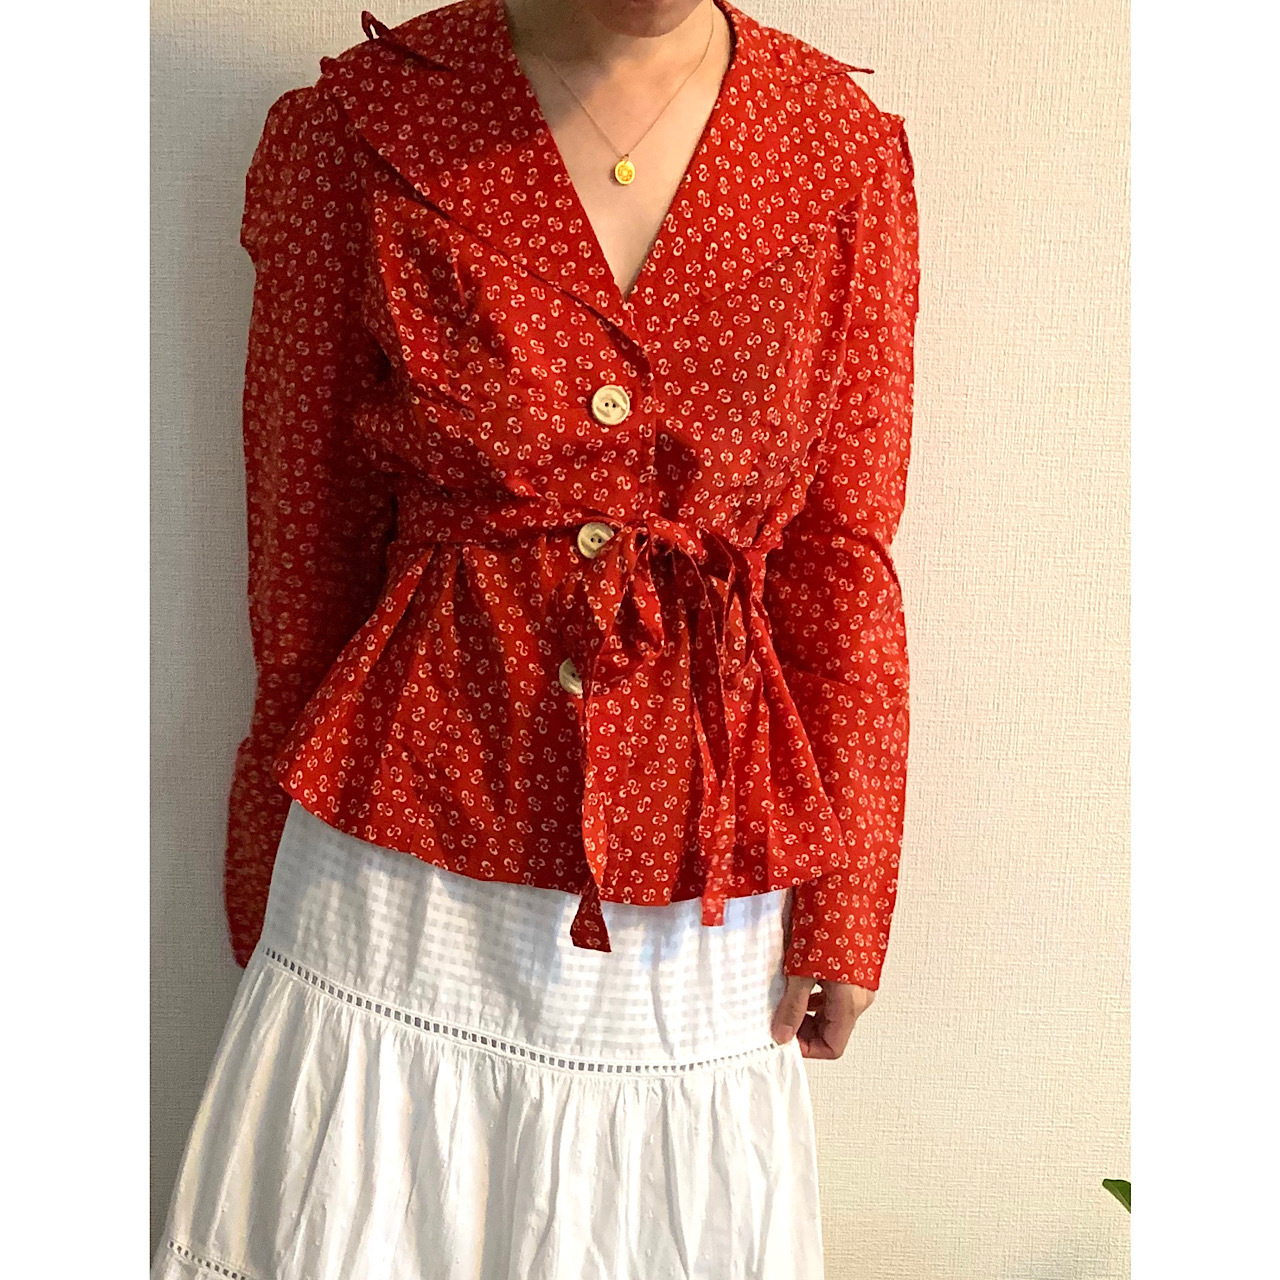 【POP UP出店中】70's vintageRed and white puffy sleeve front buttoned blouse jacket